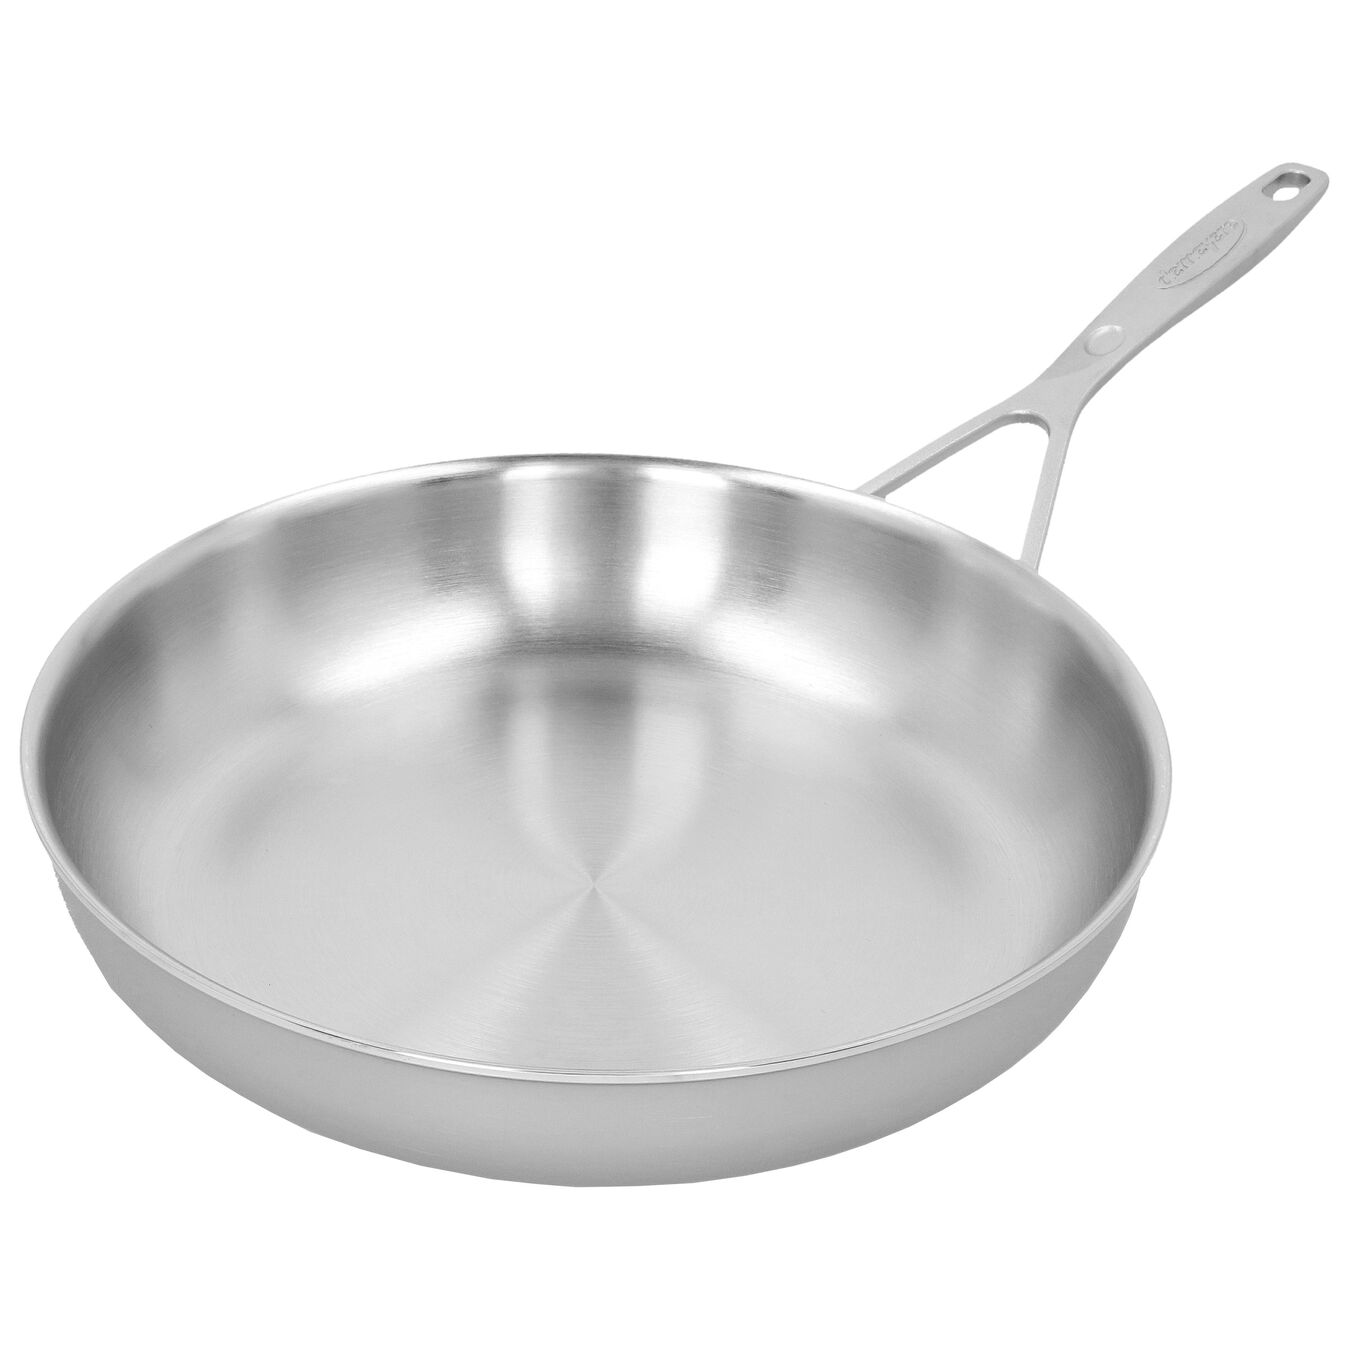 11-inch, 18/10 Stainless Steel, Frying pan,,large 3